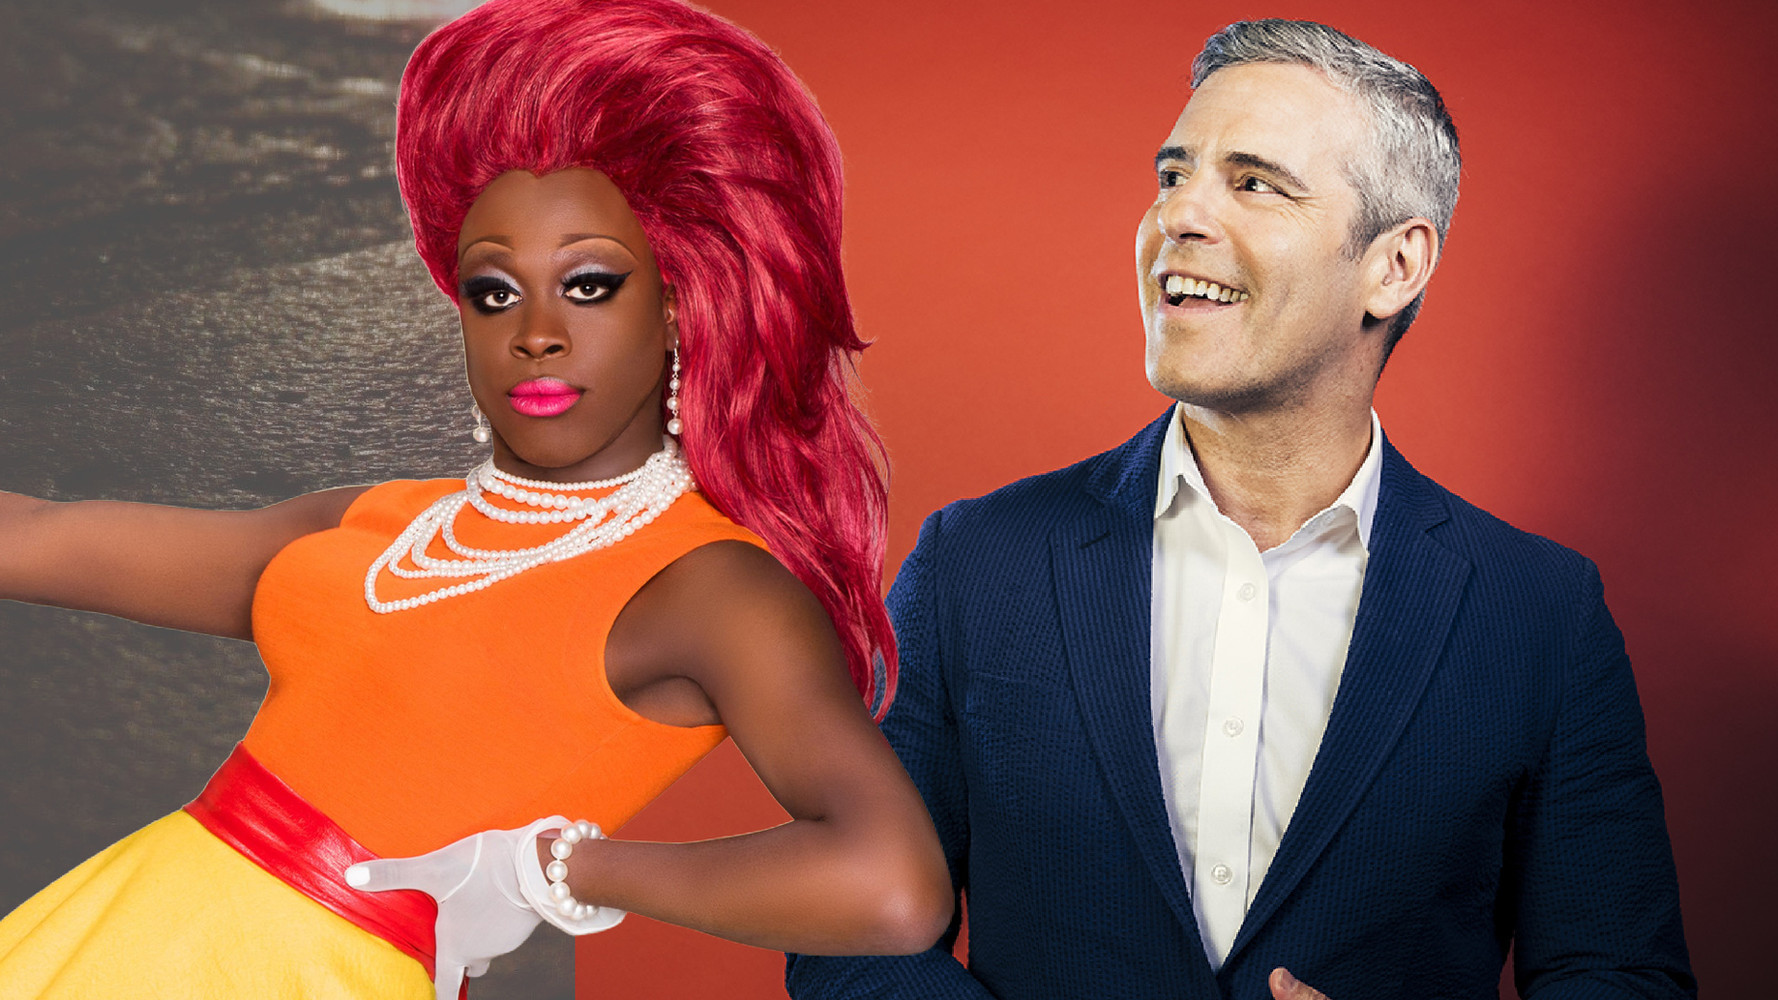 BOB The Drag Queen To Andy Cohen: I'm not a prop.